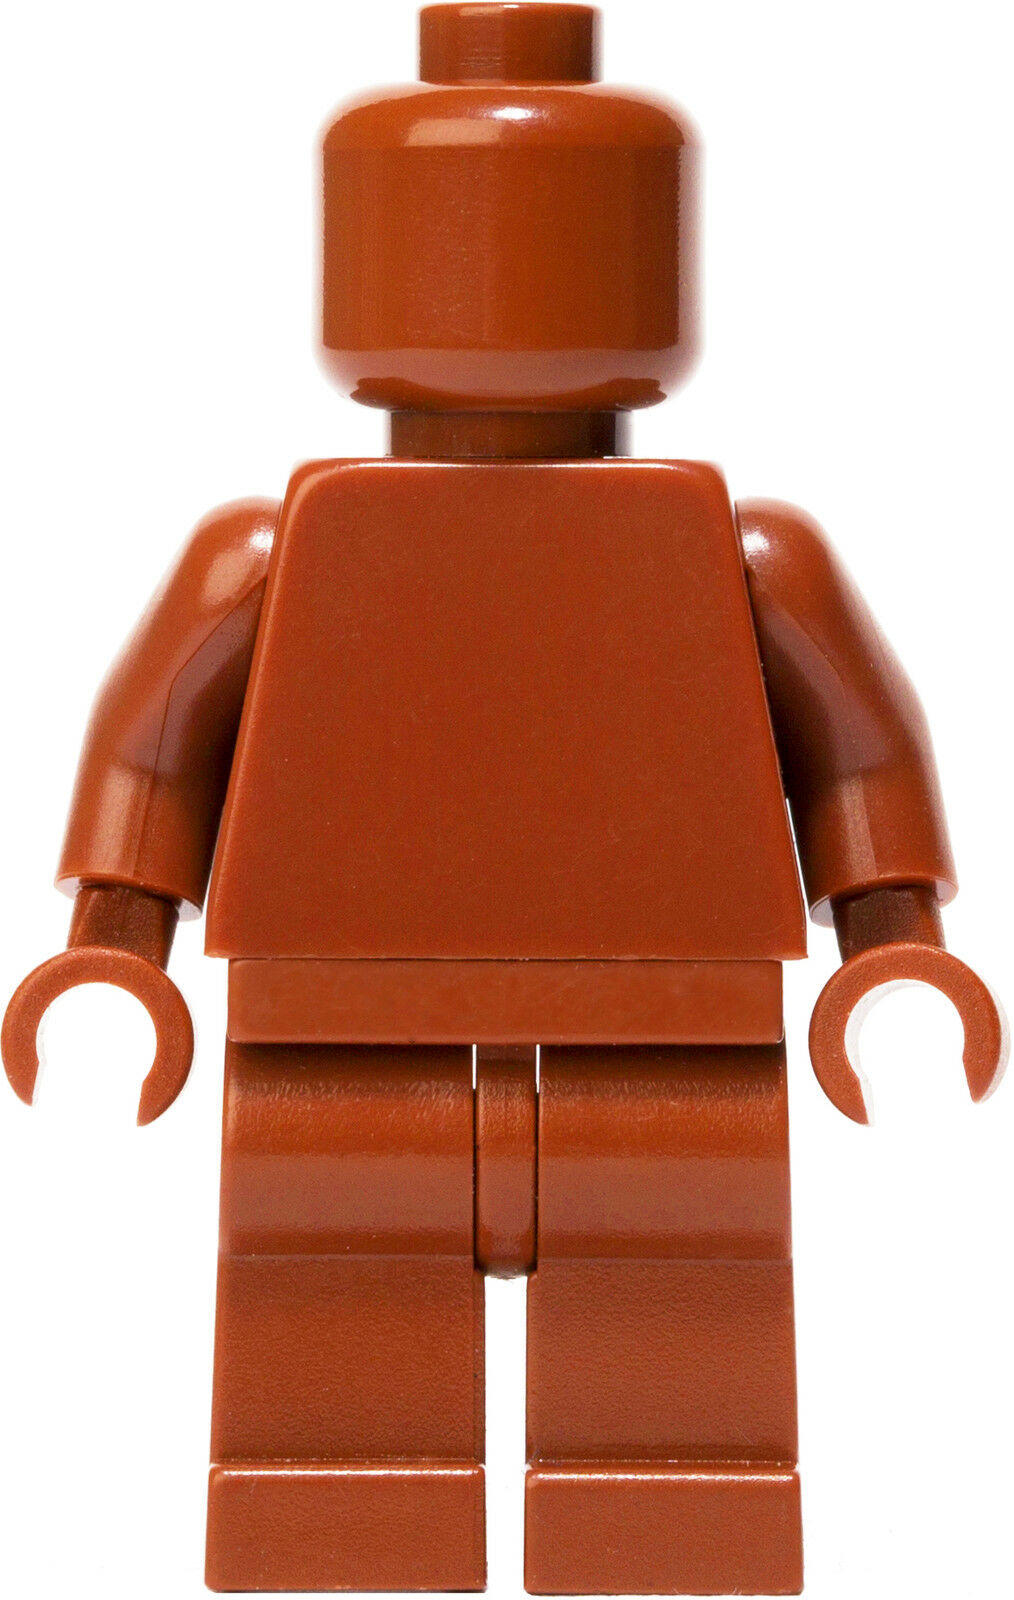 LEGO Dark Orange MONOFIG (Monochrome Minifigure)